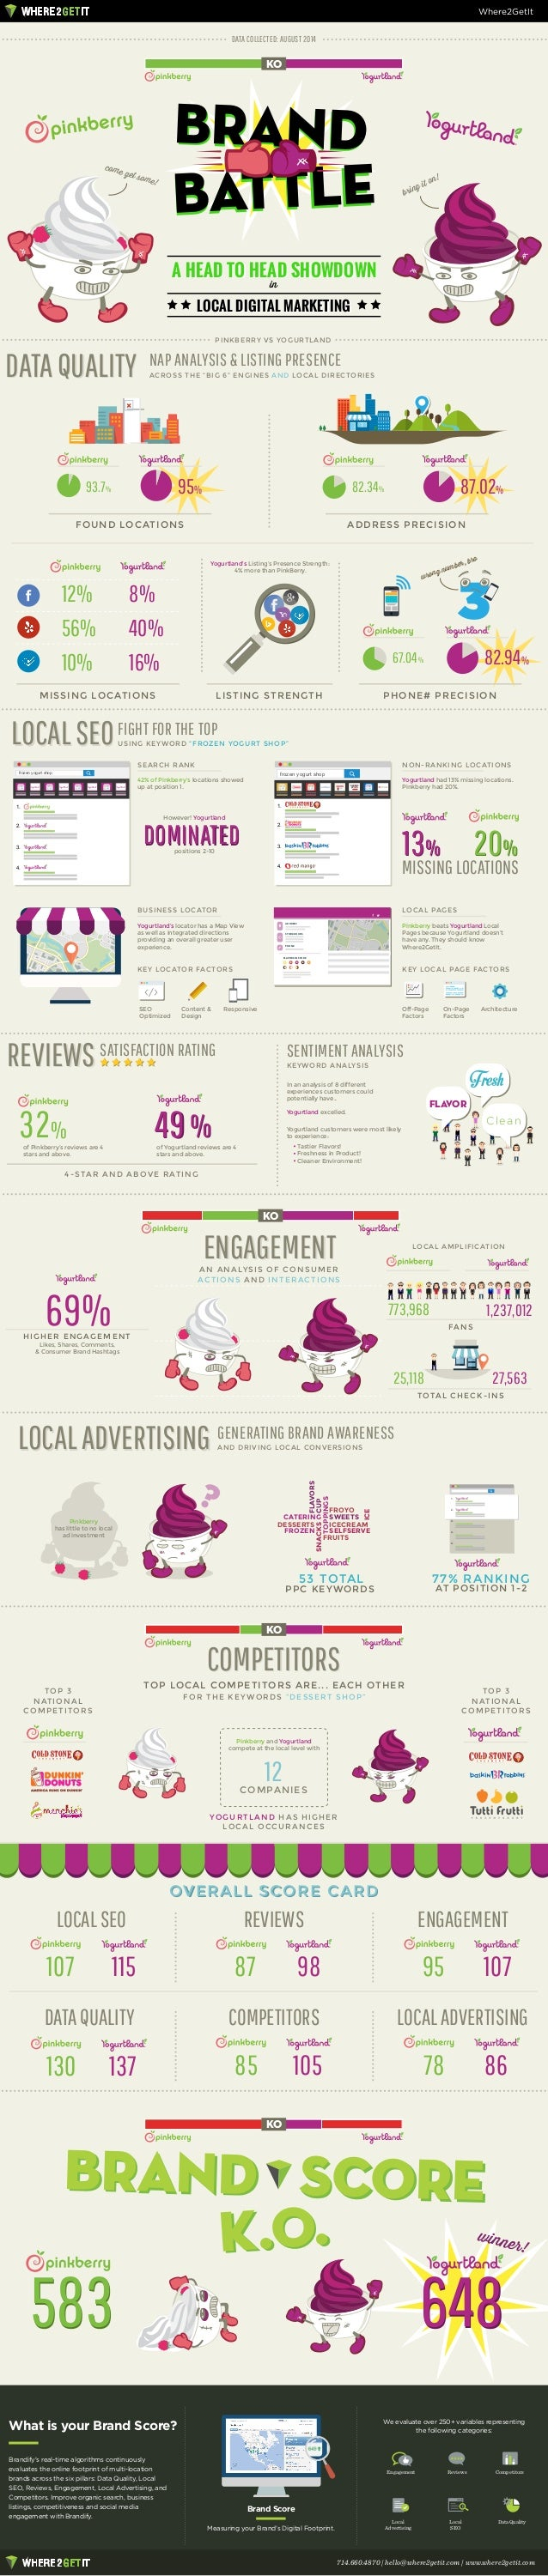 OVERALL SCORE CARD 49 COMPETITORSCOMPETITORS However! Yogurtland LOCALSEOLOCALSEO LOCALADVERTISING ENGAGEMENTENGAGEMENT RE...